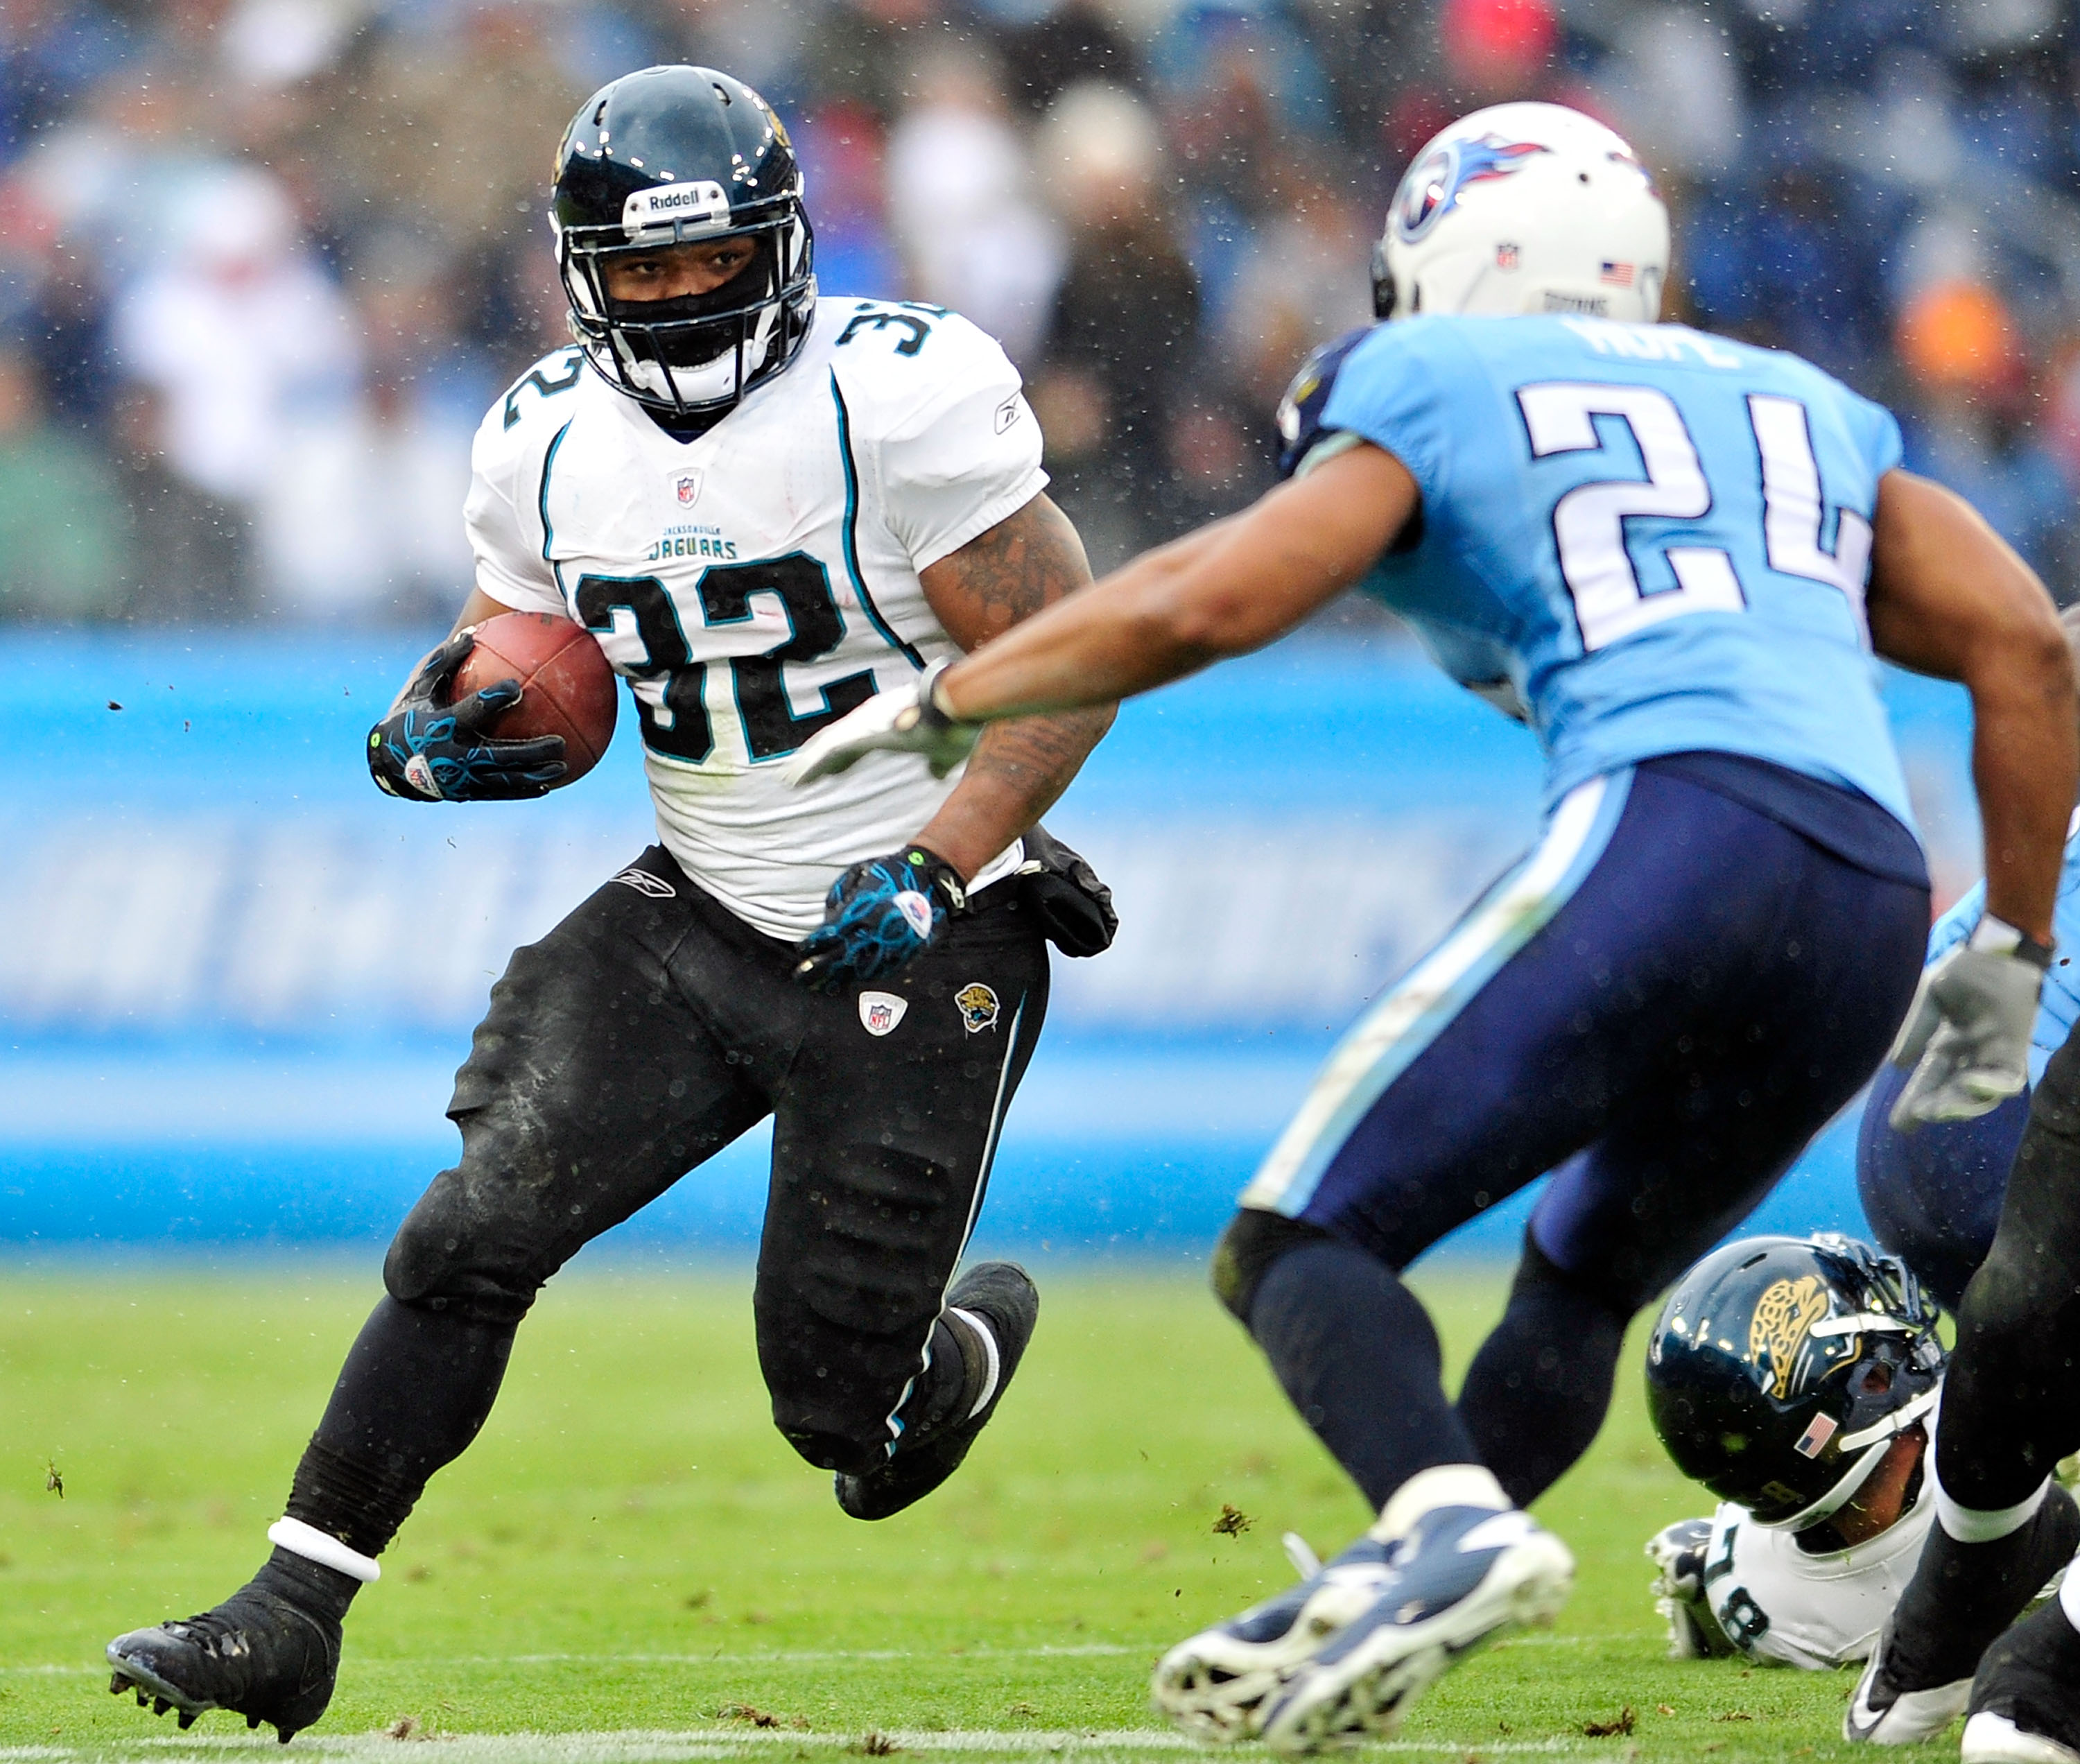 NASHVILLE, TN - DECEMBER 05:  Maurice Jones-Drew #32 of the Jacksonville Jaguars breaks away from Chris Hope #24 of the Tennessee Titans at LP Field on December 5, 2010 in Nashville, Tennessee. The Jaguars won 17-6.  (Photo by Grant Halverson/Getty Images